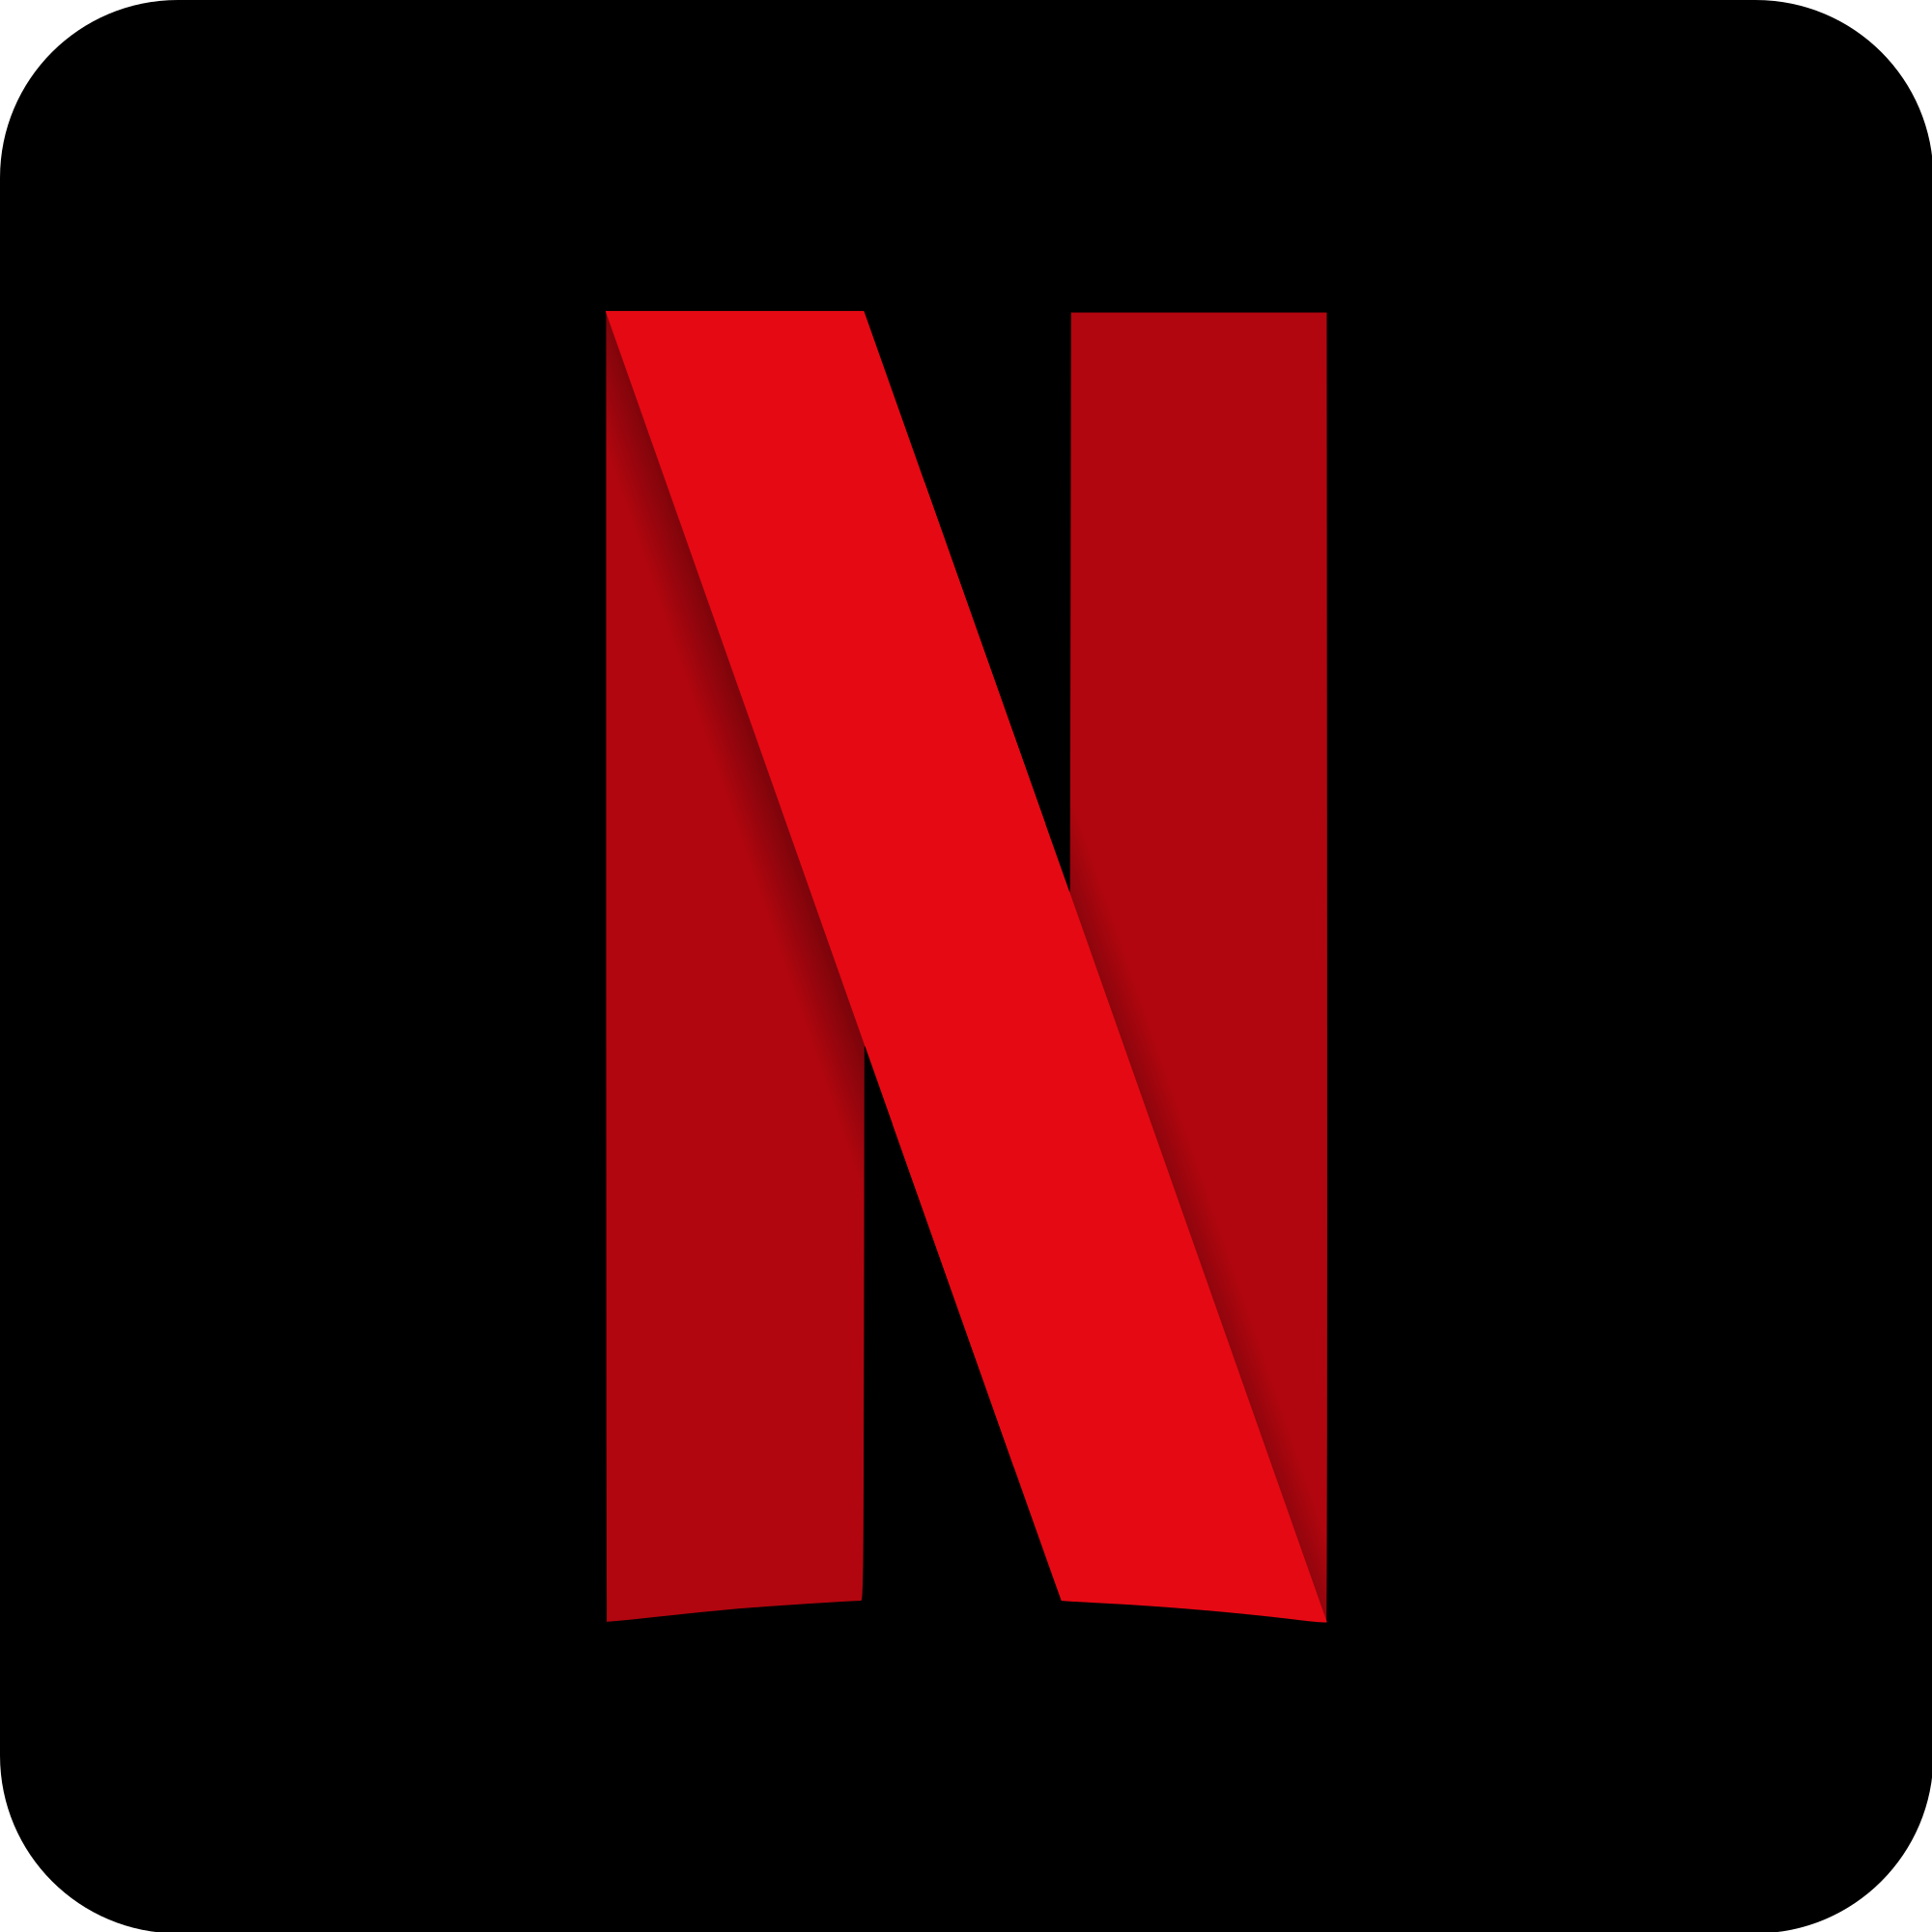 File:Netflix icon.svg.